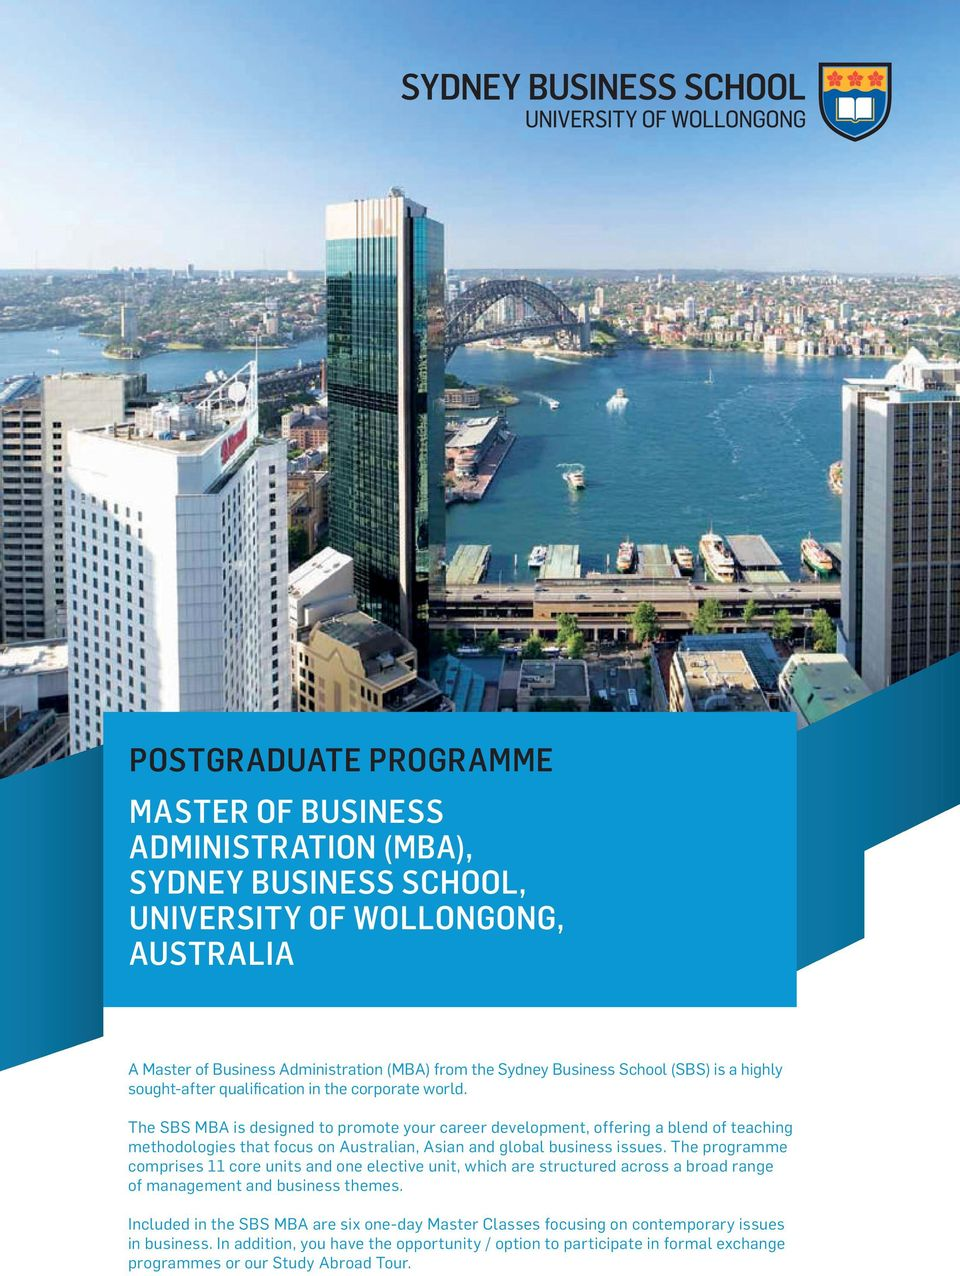 The SBS MBA is designed to promote your career development, offering a blend of teaching methodologies that focus on Australian, Asian and global business issues.